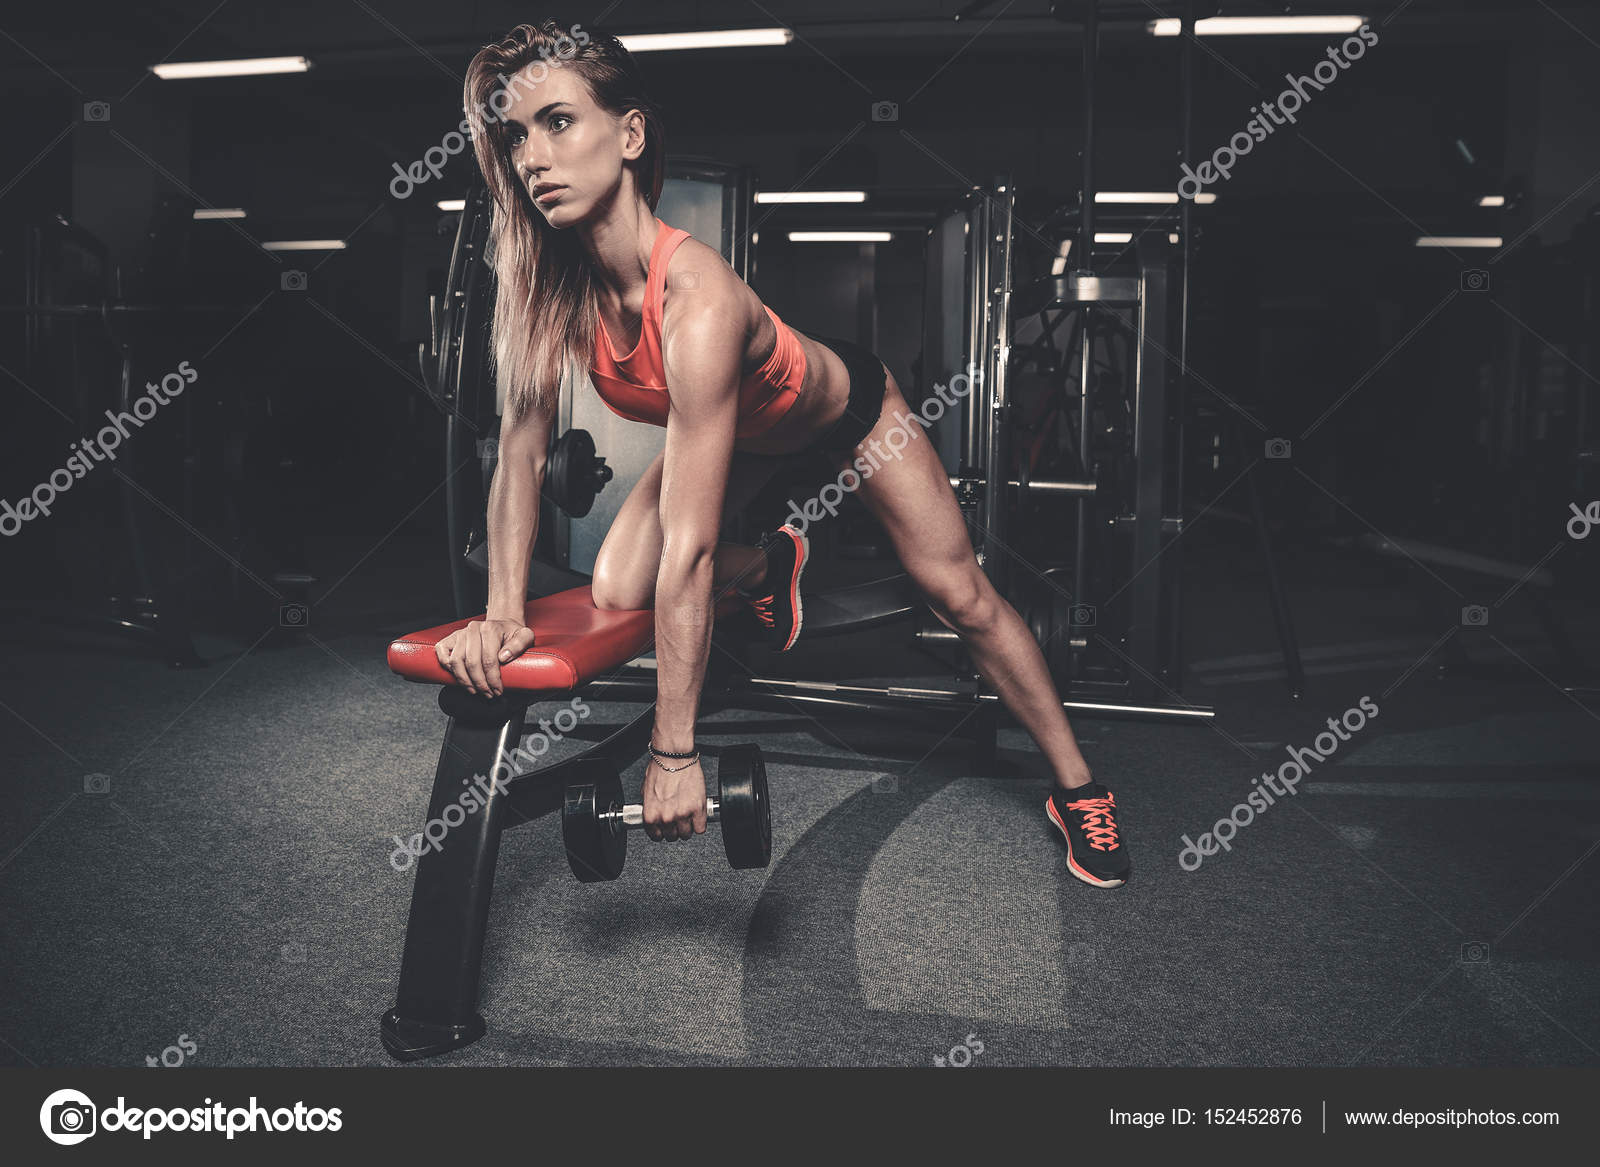 Tight pussy Datierung eines koreanischen Mädchens in Australien always the one approach